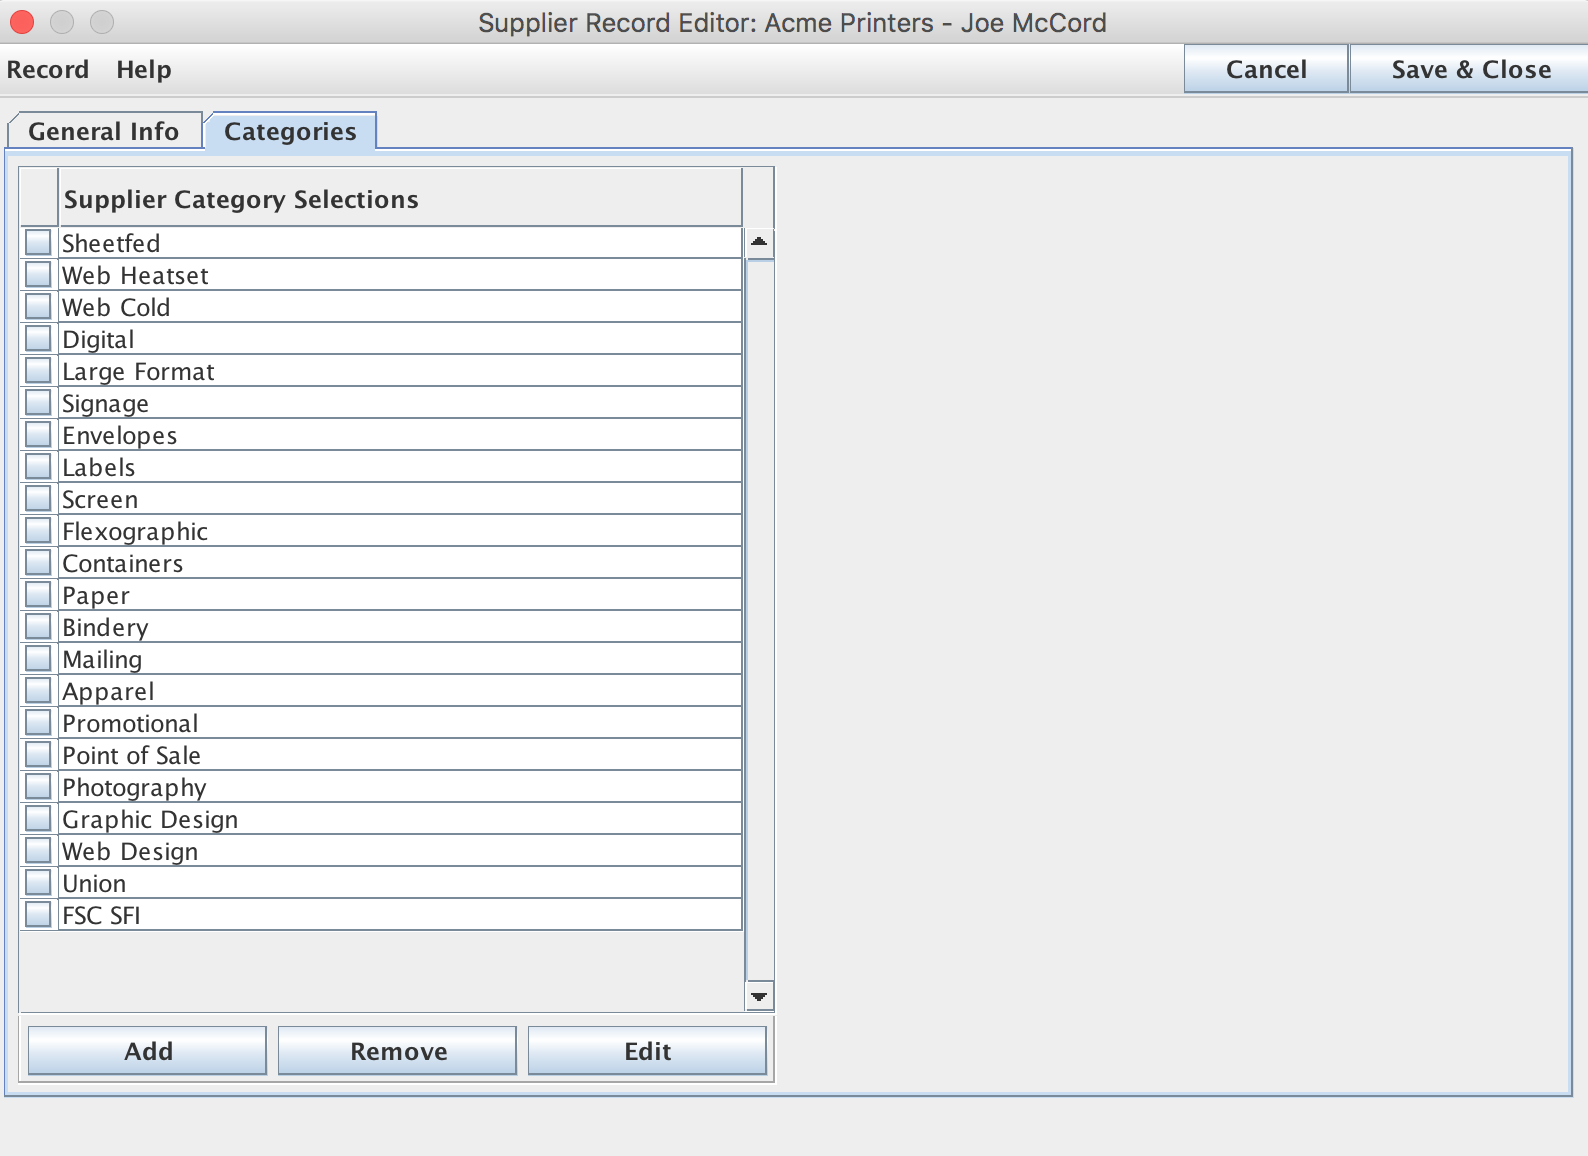 Categories Tab on the Supplier Record Editor